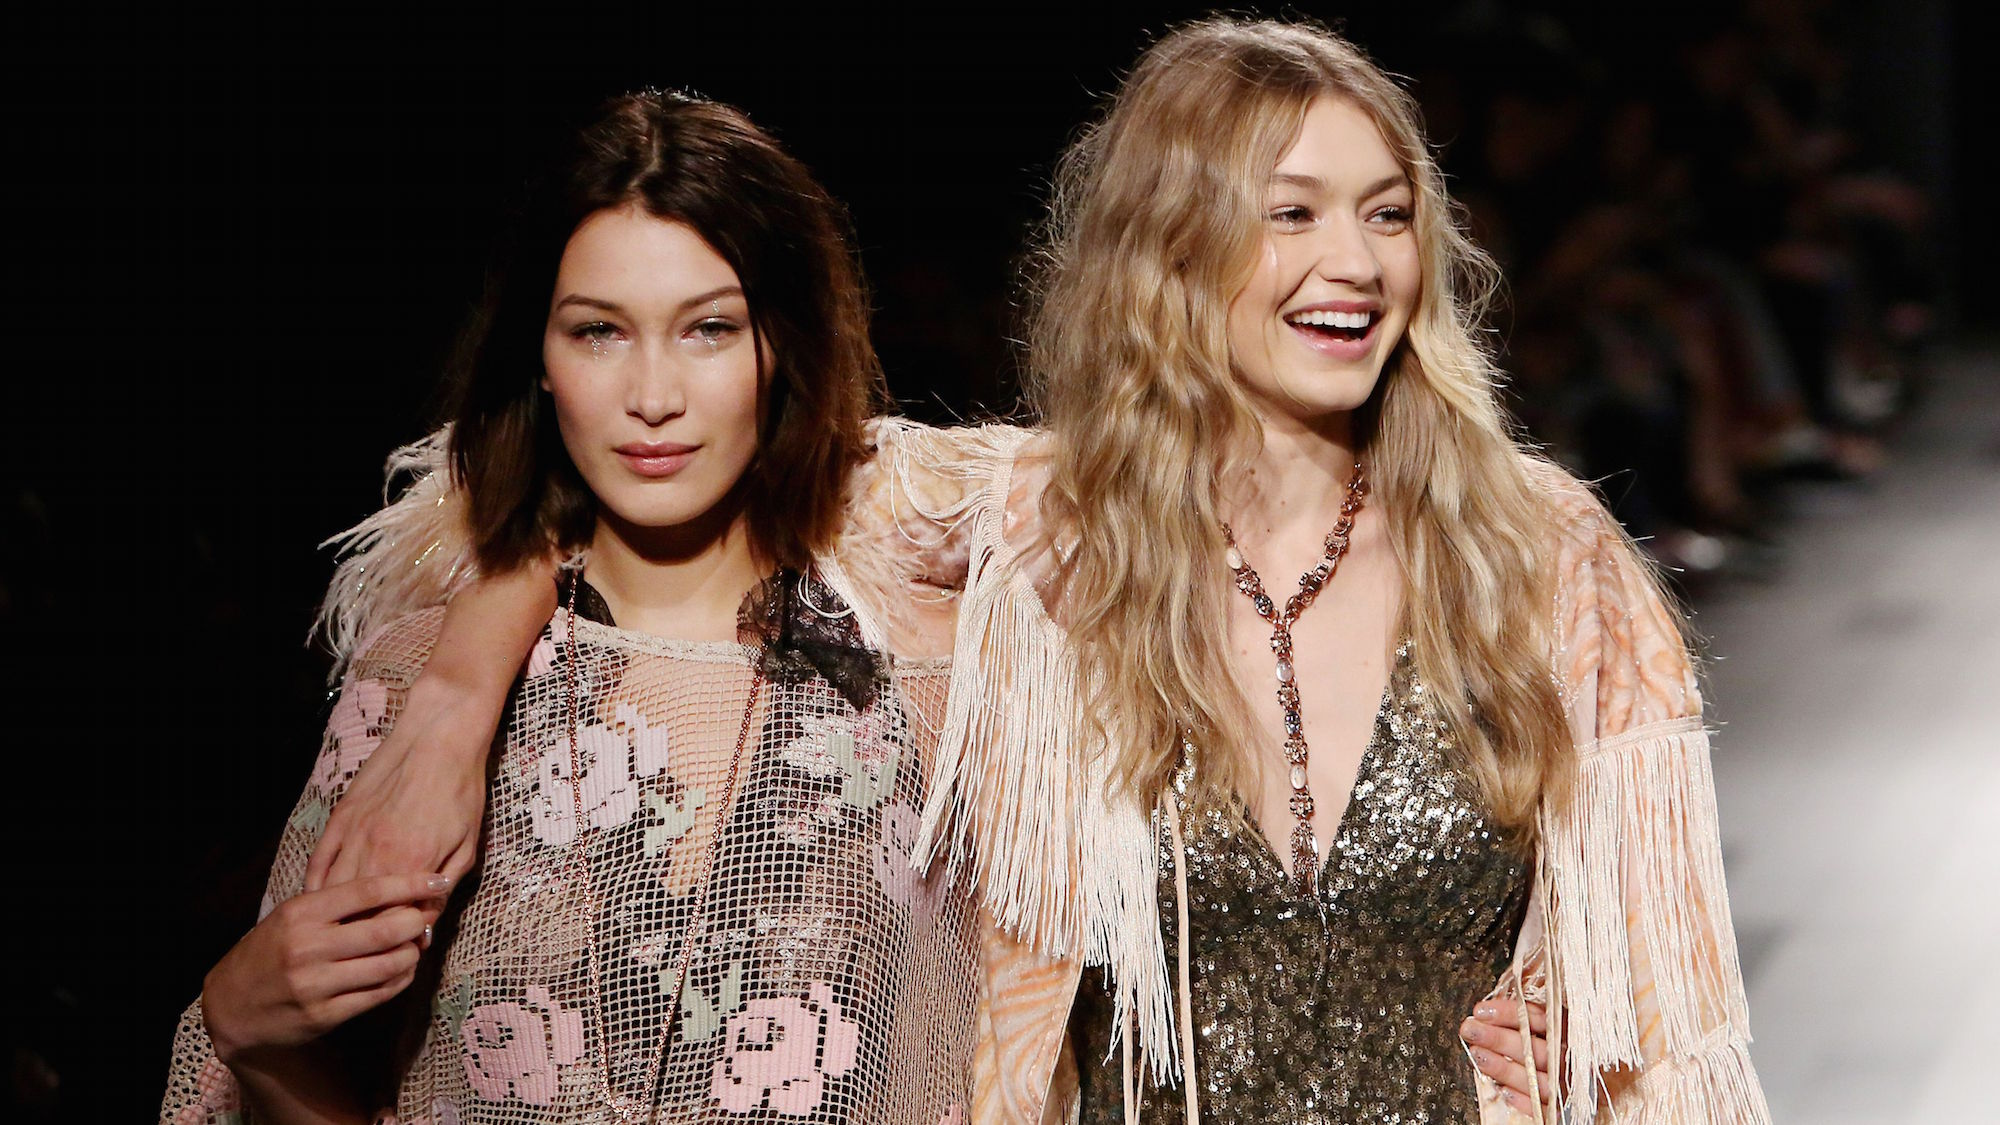 Gigi The Christmas Snake.The Best Looks From Gigi And Bella Hadid This Fashion Week